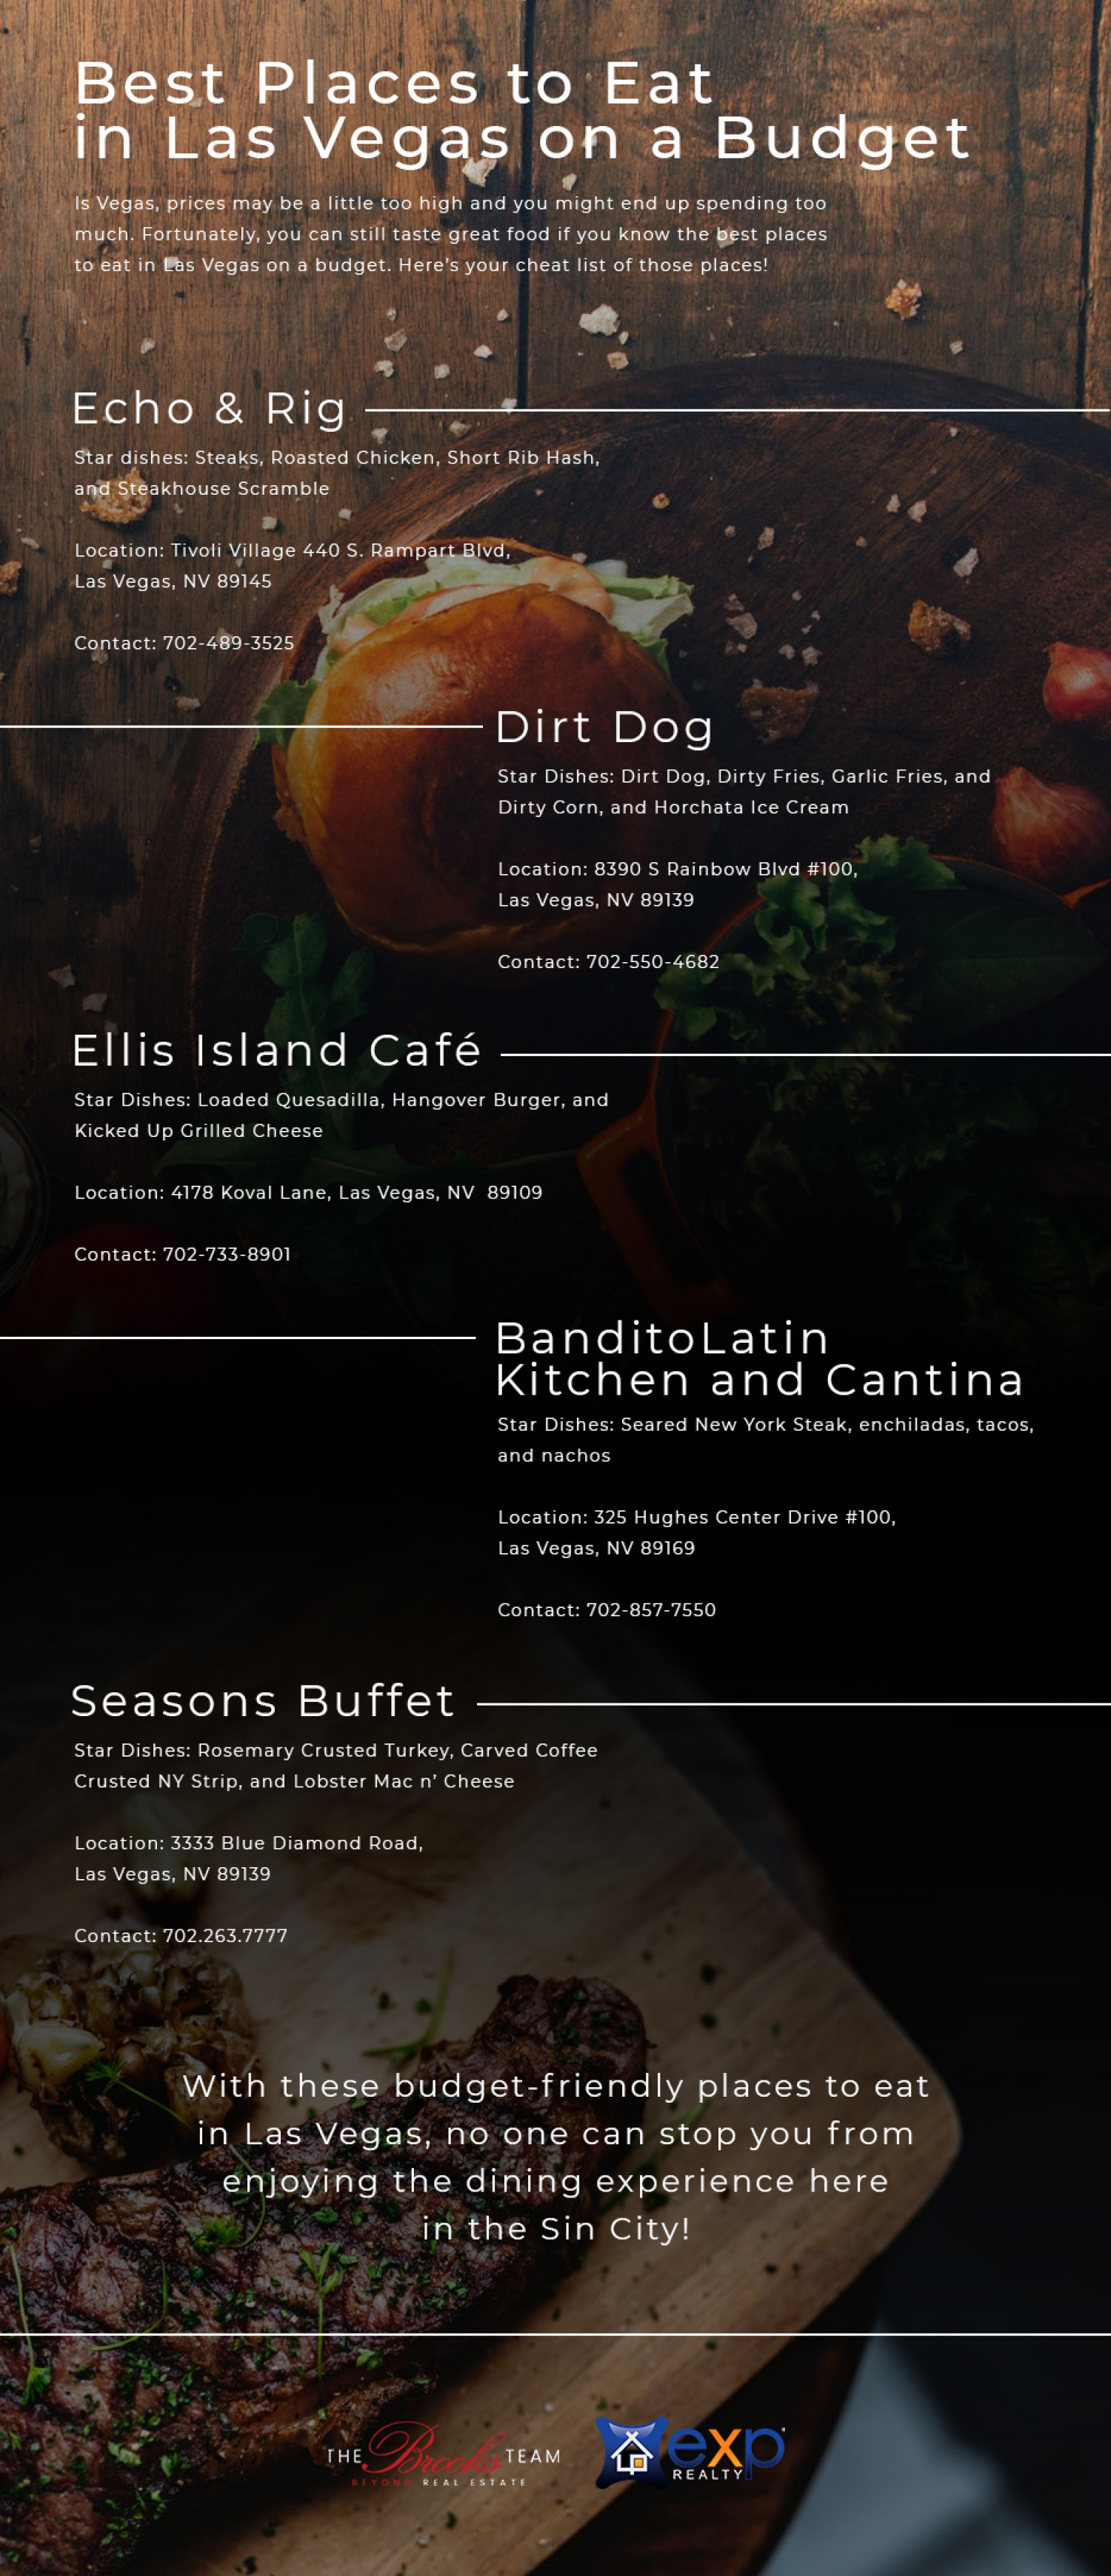 Best Places to Eat in Las Vegas on a Budget Infographic